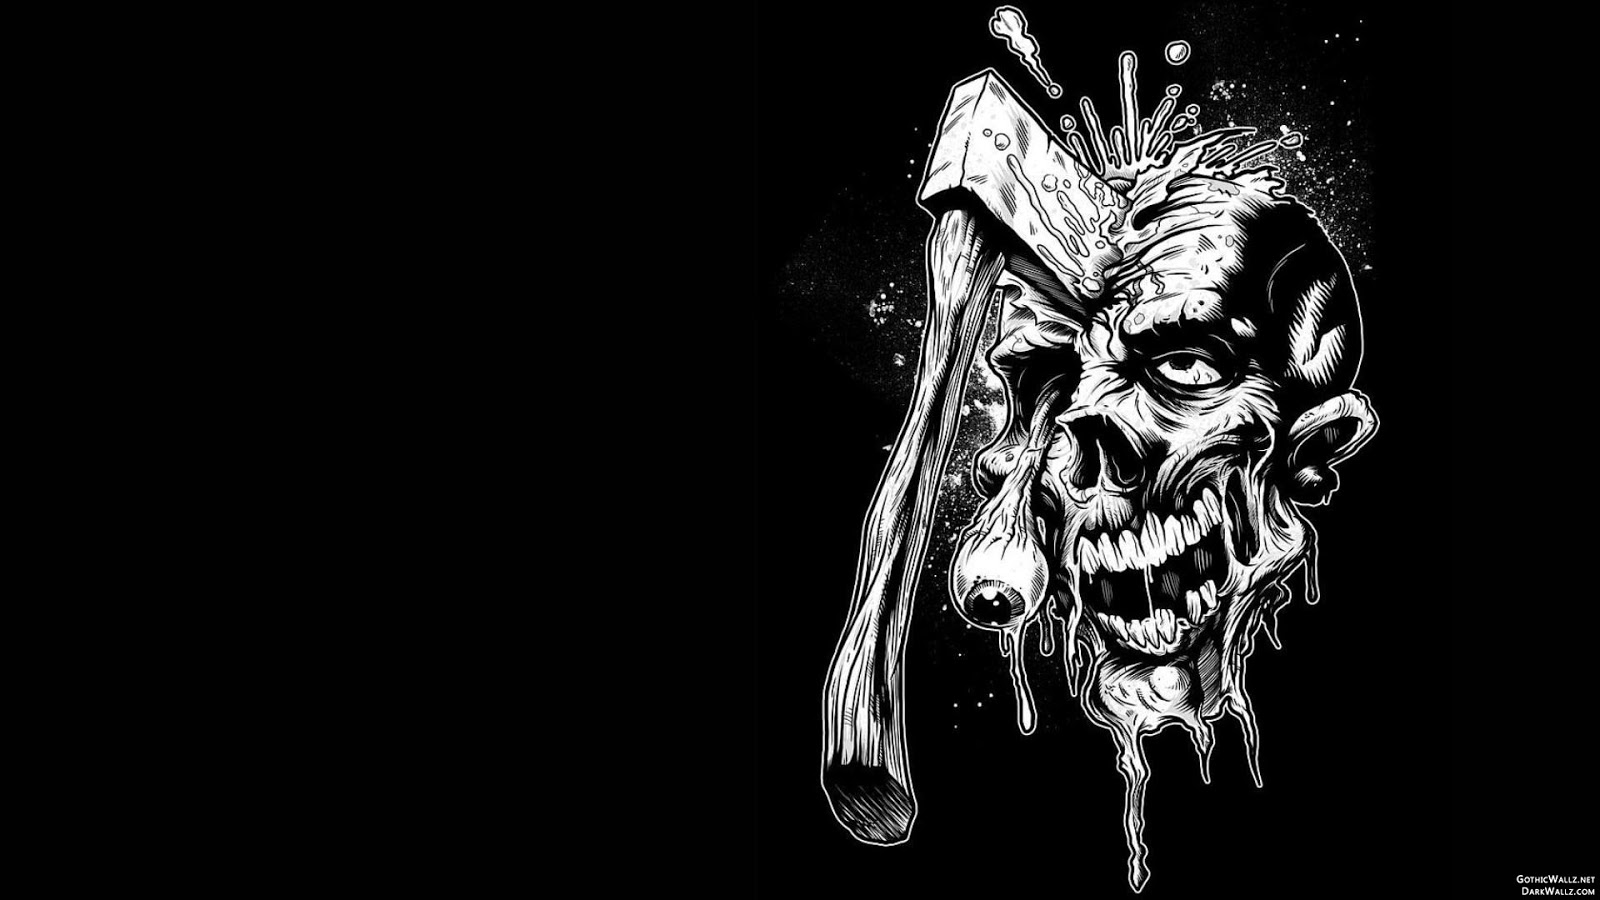 Axe in skull abstract illustration | Dark Gothic Wallpaper Download